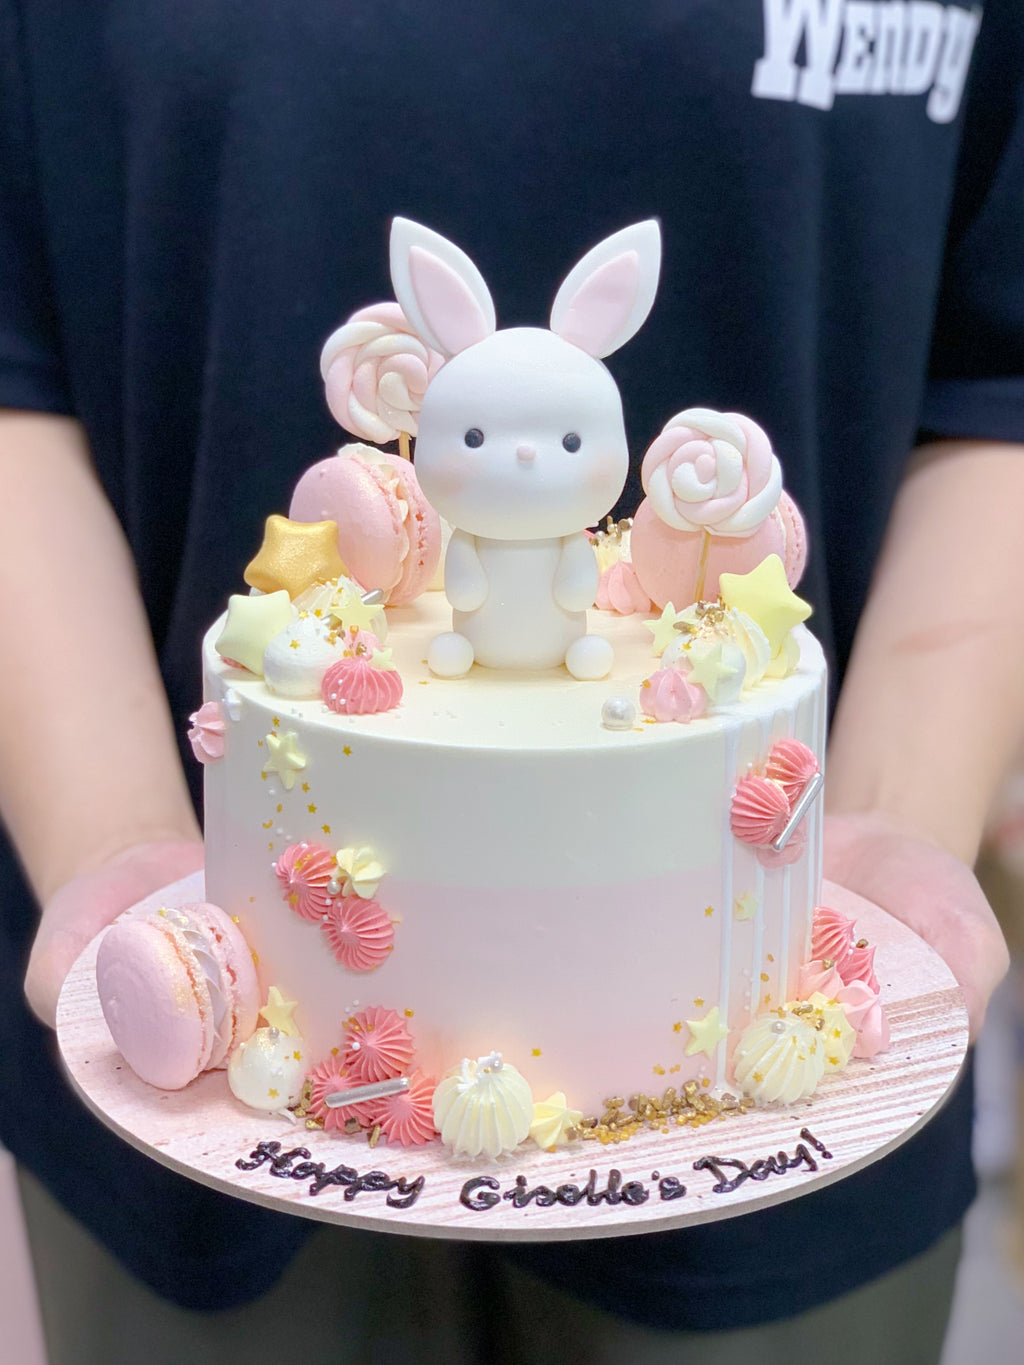 Bunny Pink Cake with Macarons, Lollipop and Stars